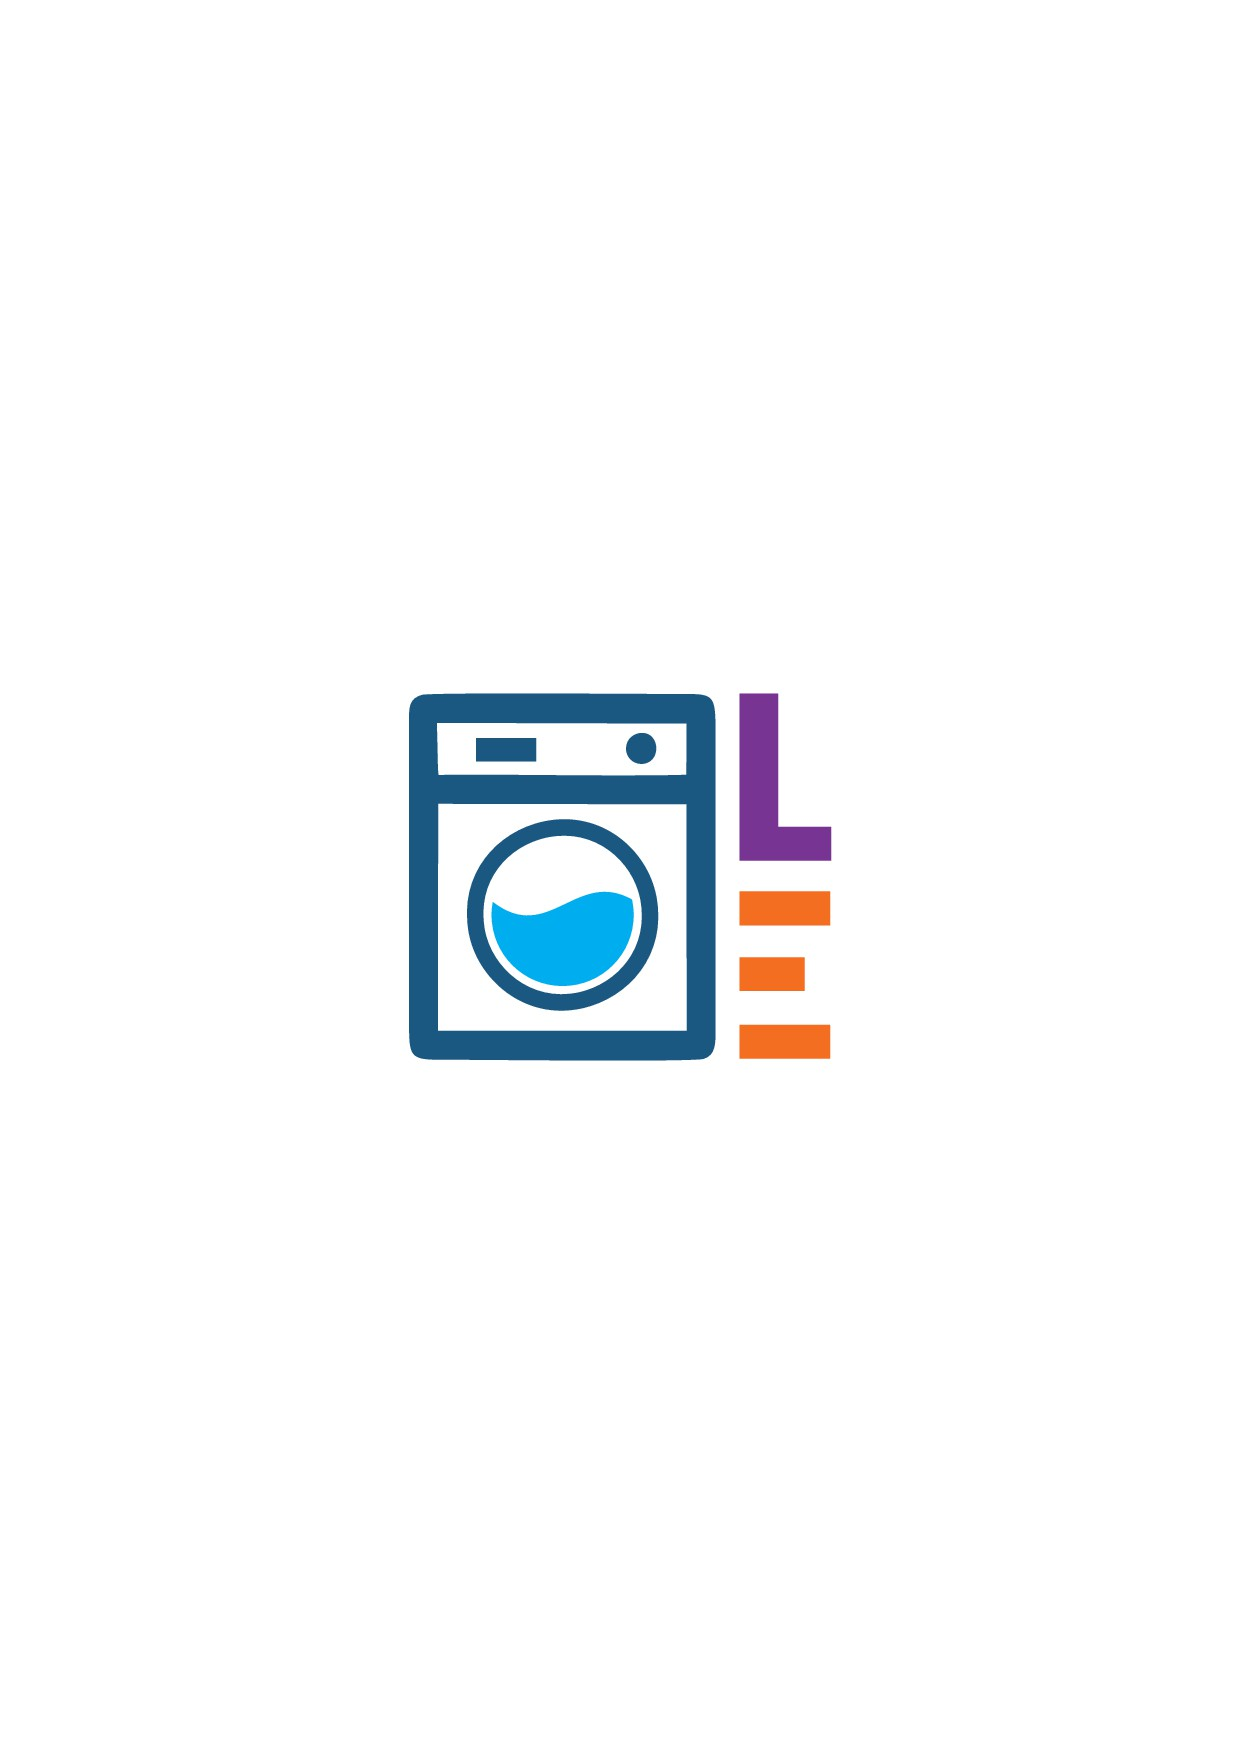 In need of a clean design for a premium laundromat service with pick up and delivery being priority.